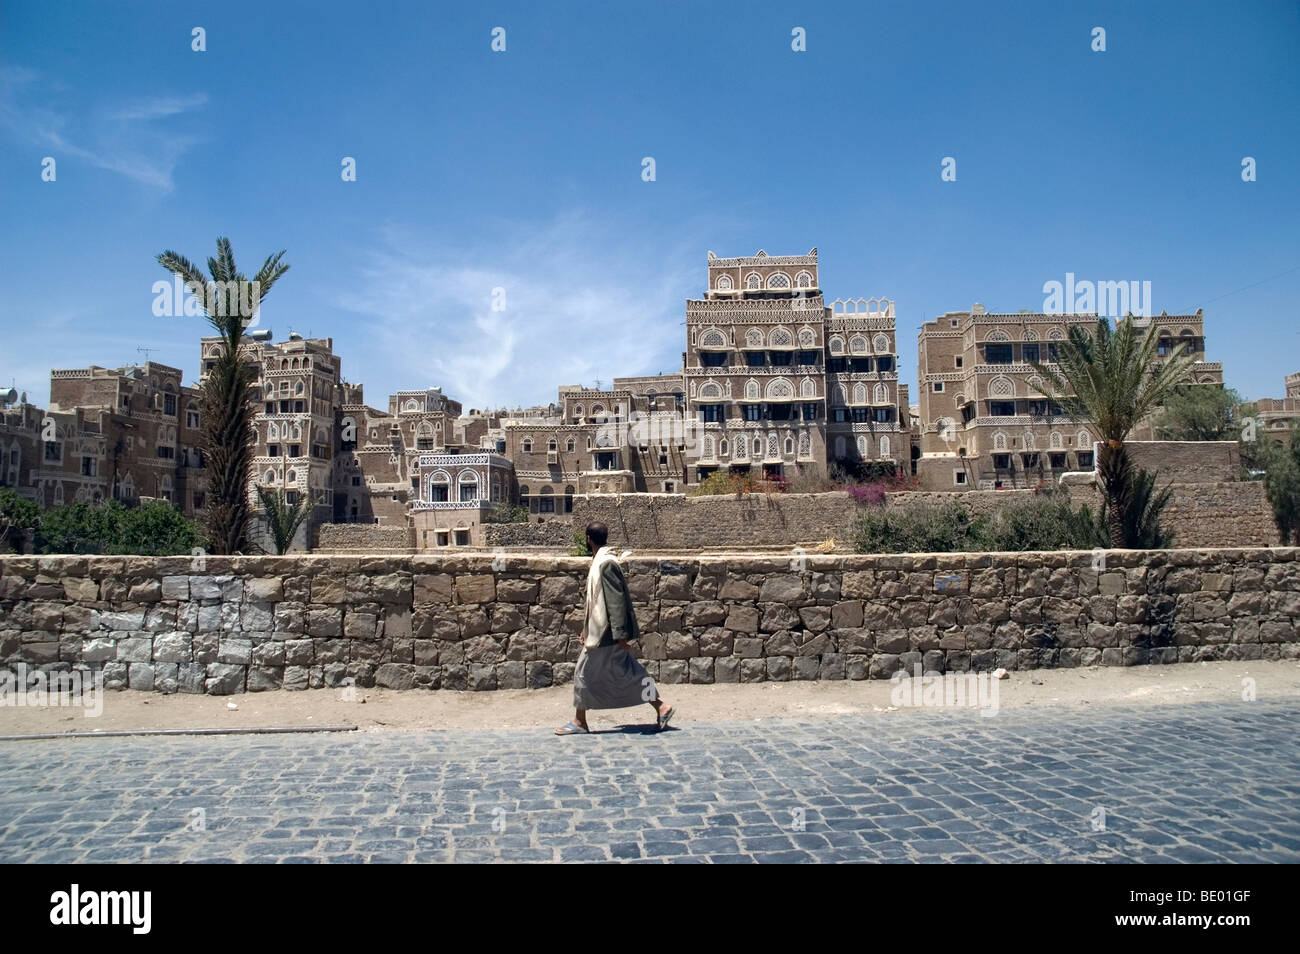 A man strolling past tower houses in a pedestrian area of the old city of Sana'a, Yemen. - Stock Image